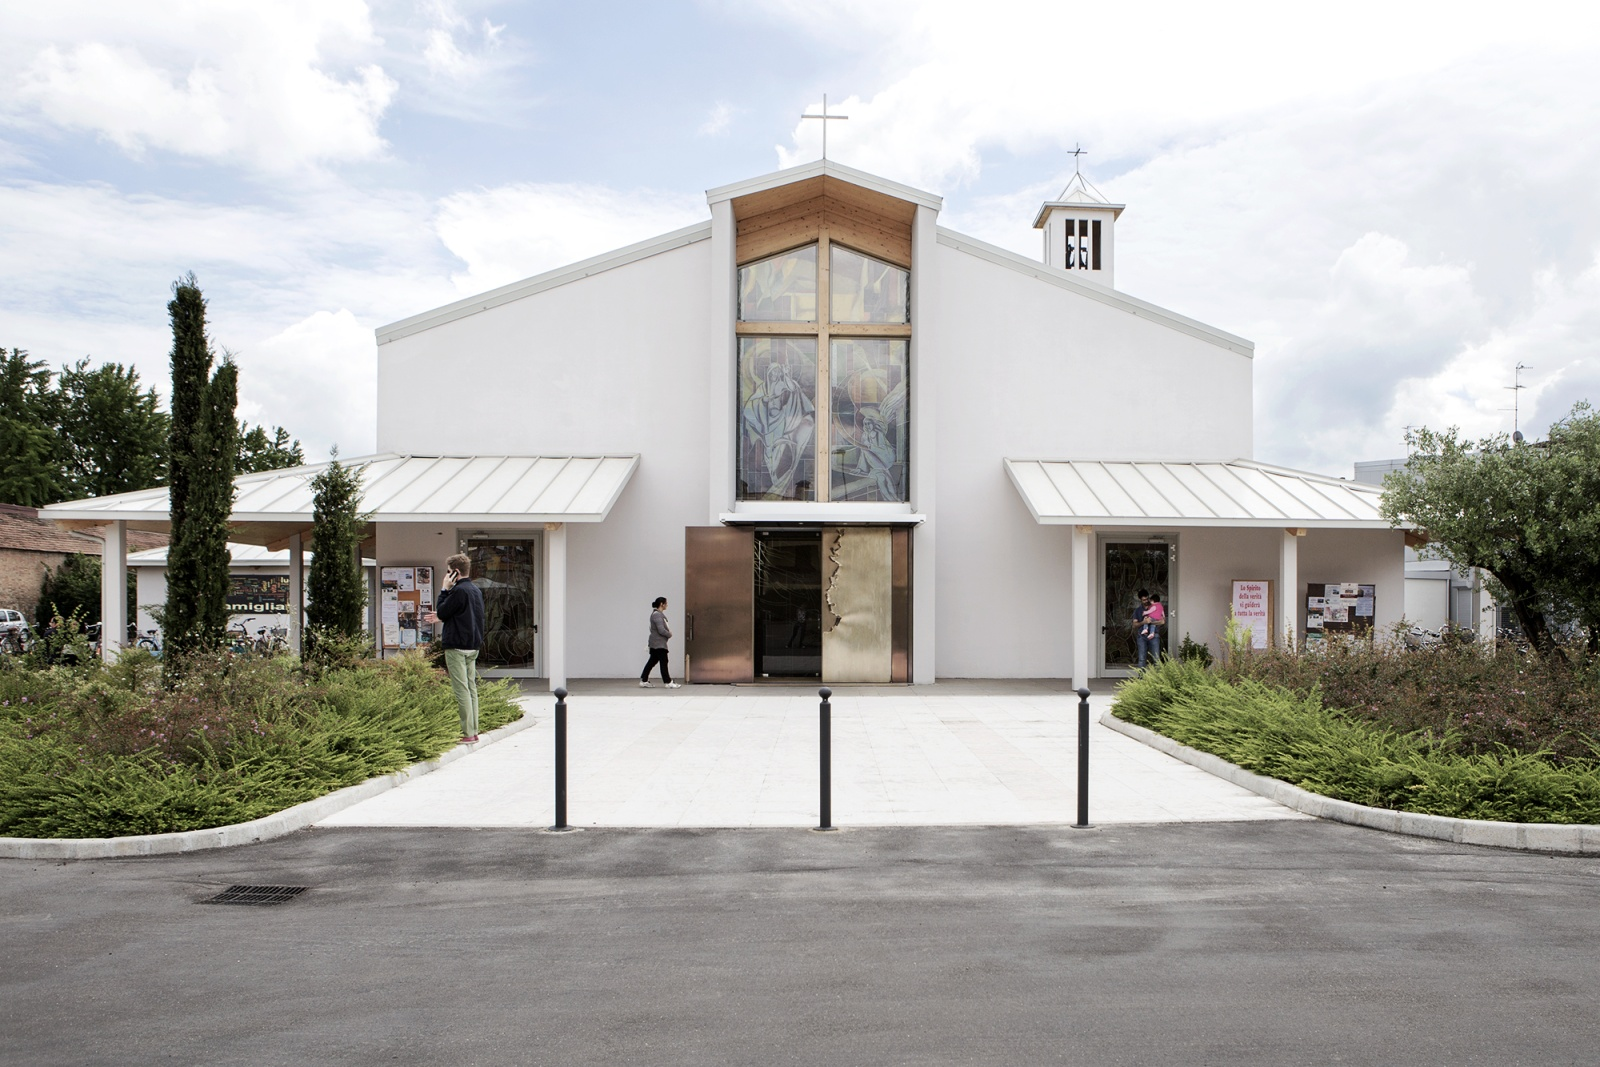 """San Felice sul Panaro, Emilia Romagna Region, Italy, May 2015 - """"Chiesa Nuova"""" in San Felice sul Panaro is the new anti-seismic church of the town. It was built entirely in wood, using x-lam panels and lamellar beams. Finally, the internal walls were covered with plasterboard."""